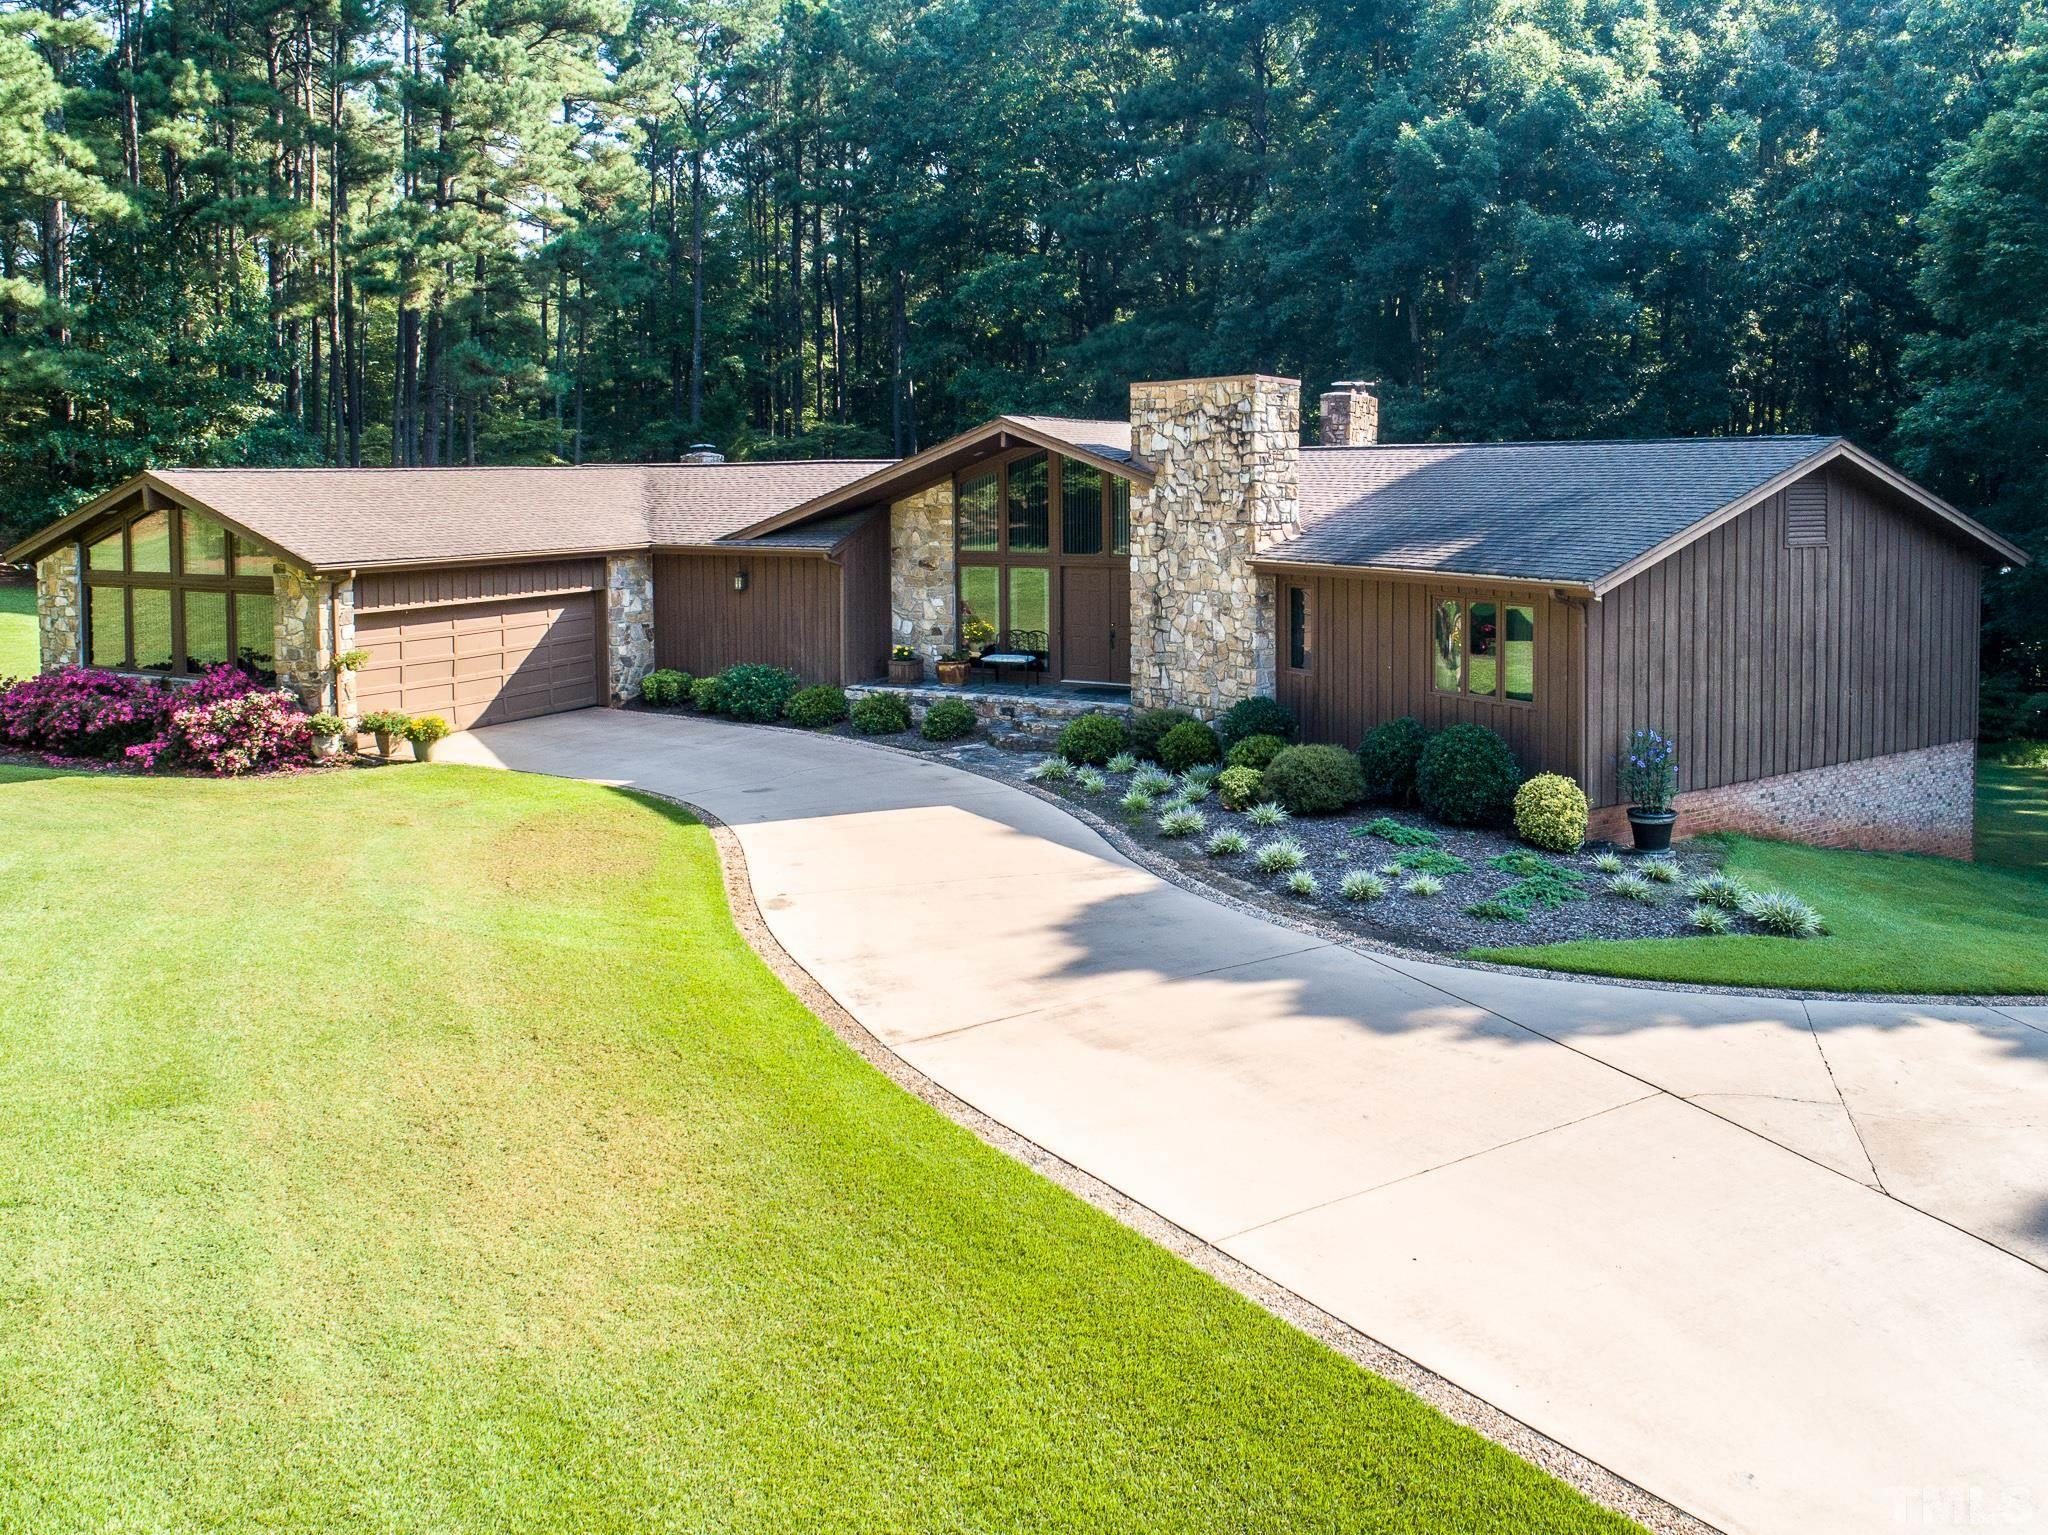 Own a one of a kind gated estate. Perfect private oasis in Cary with NO city taxes. Landscaped & partly wooded 5.6 acres. Only 1/2 mile for I-40. Backs up to Reedy Creek School & SAS property.5 bedrooms, 3 Baths, 3 fireplaces, work-out room. First floor Master suite, vaulted ceilings, lots to storage. 2 car garage. Large patio.  Wrap around deck, Water filtering system in home. 2 stalls horse barn (could be converted into a place for entertaining). Fully fenced in and gated for privacy.